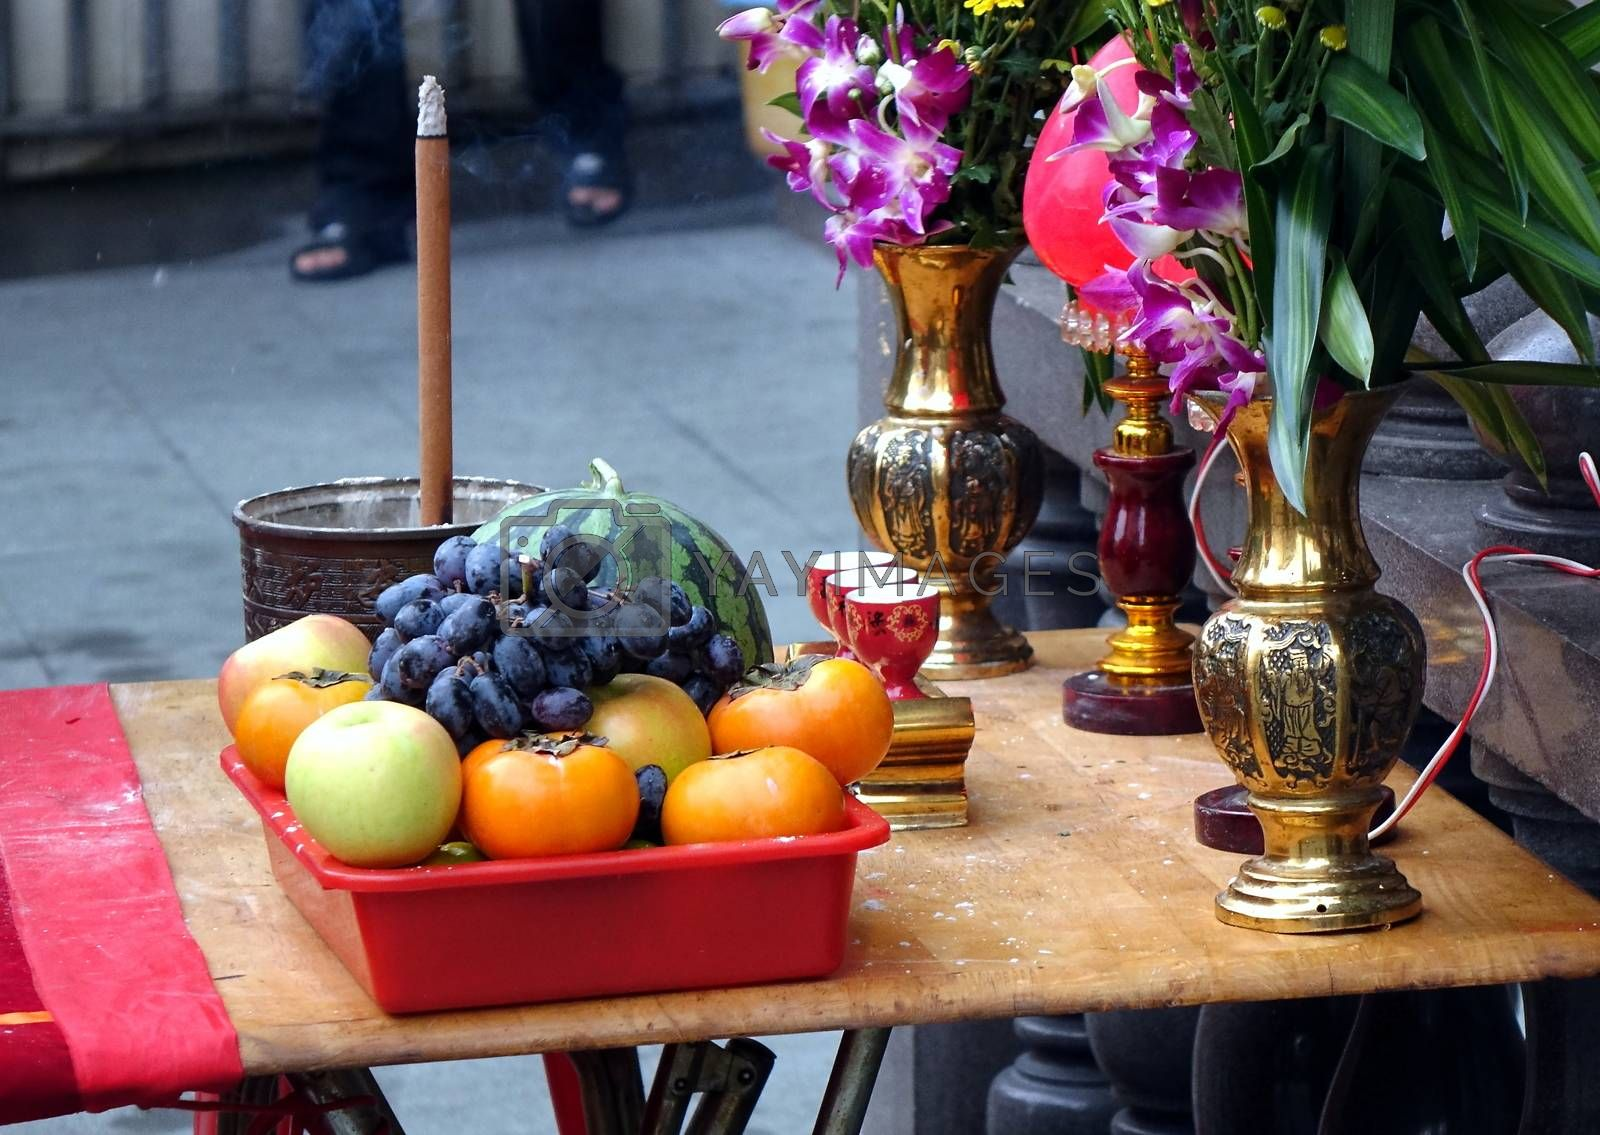 Buddhist worship table with fruits, wine, incense and flowers